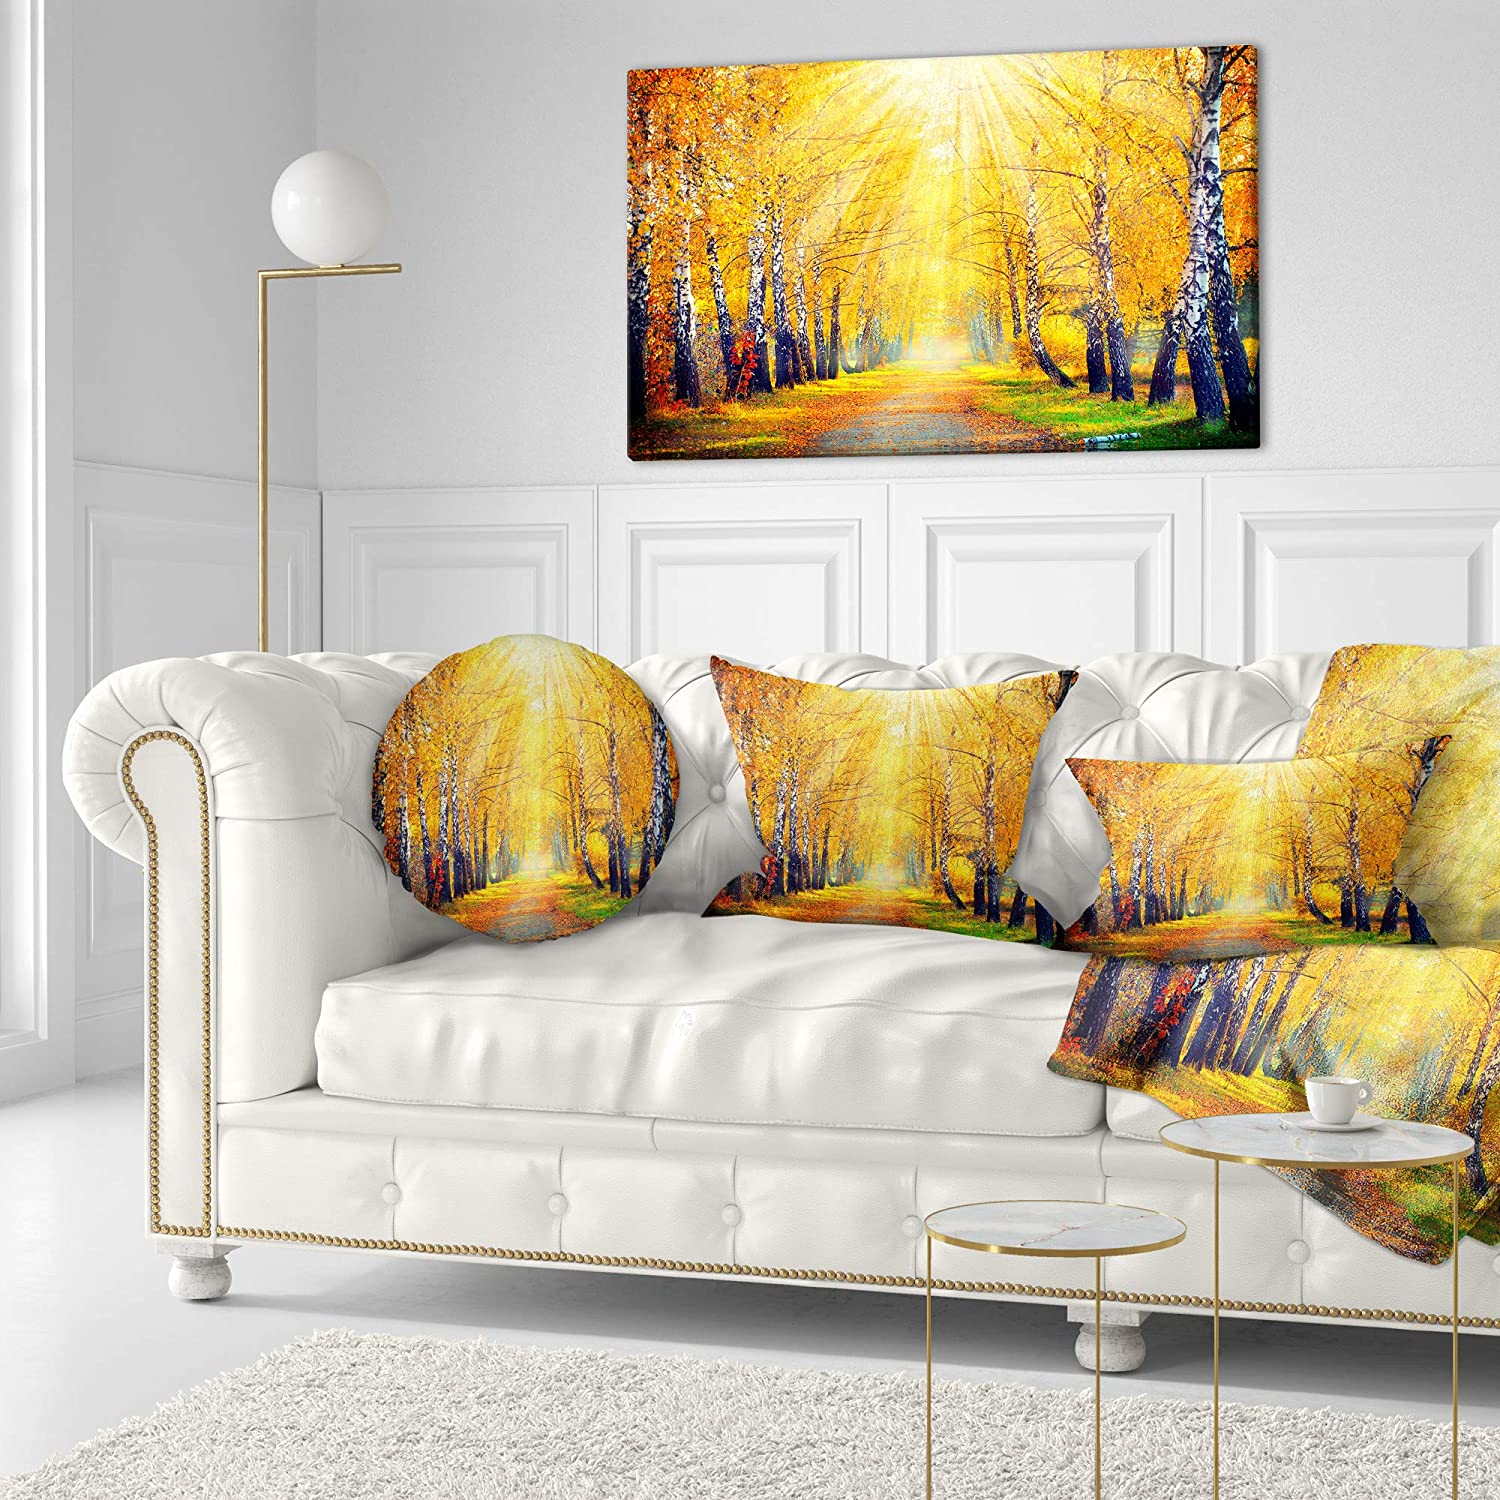 Designart Cu14259 12 20 Yellow Autumn Trees In Sunray Landscape Printed Lumbar Cushion Cover For Living